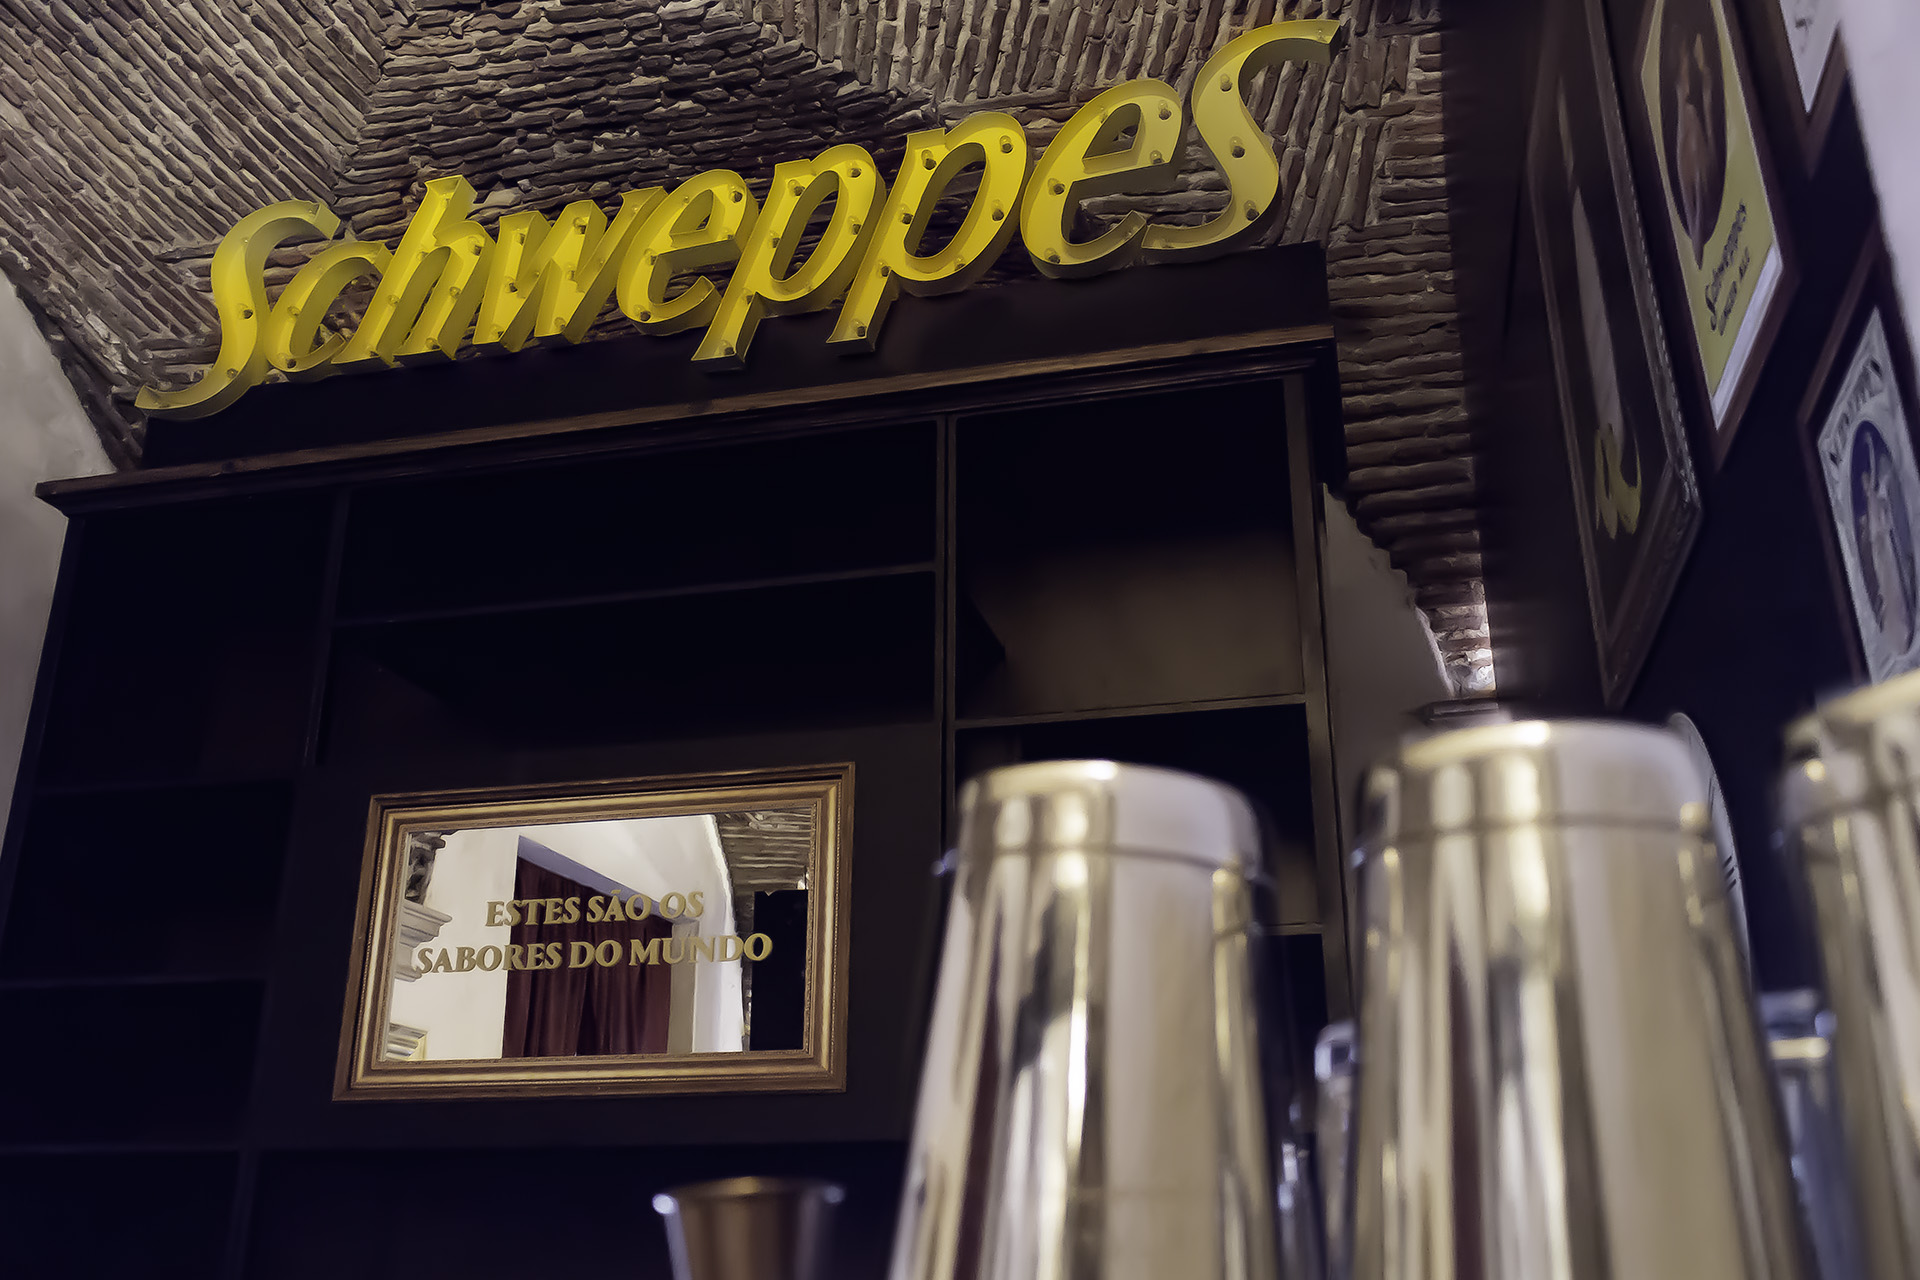 Shakers Schweppes